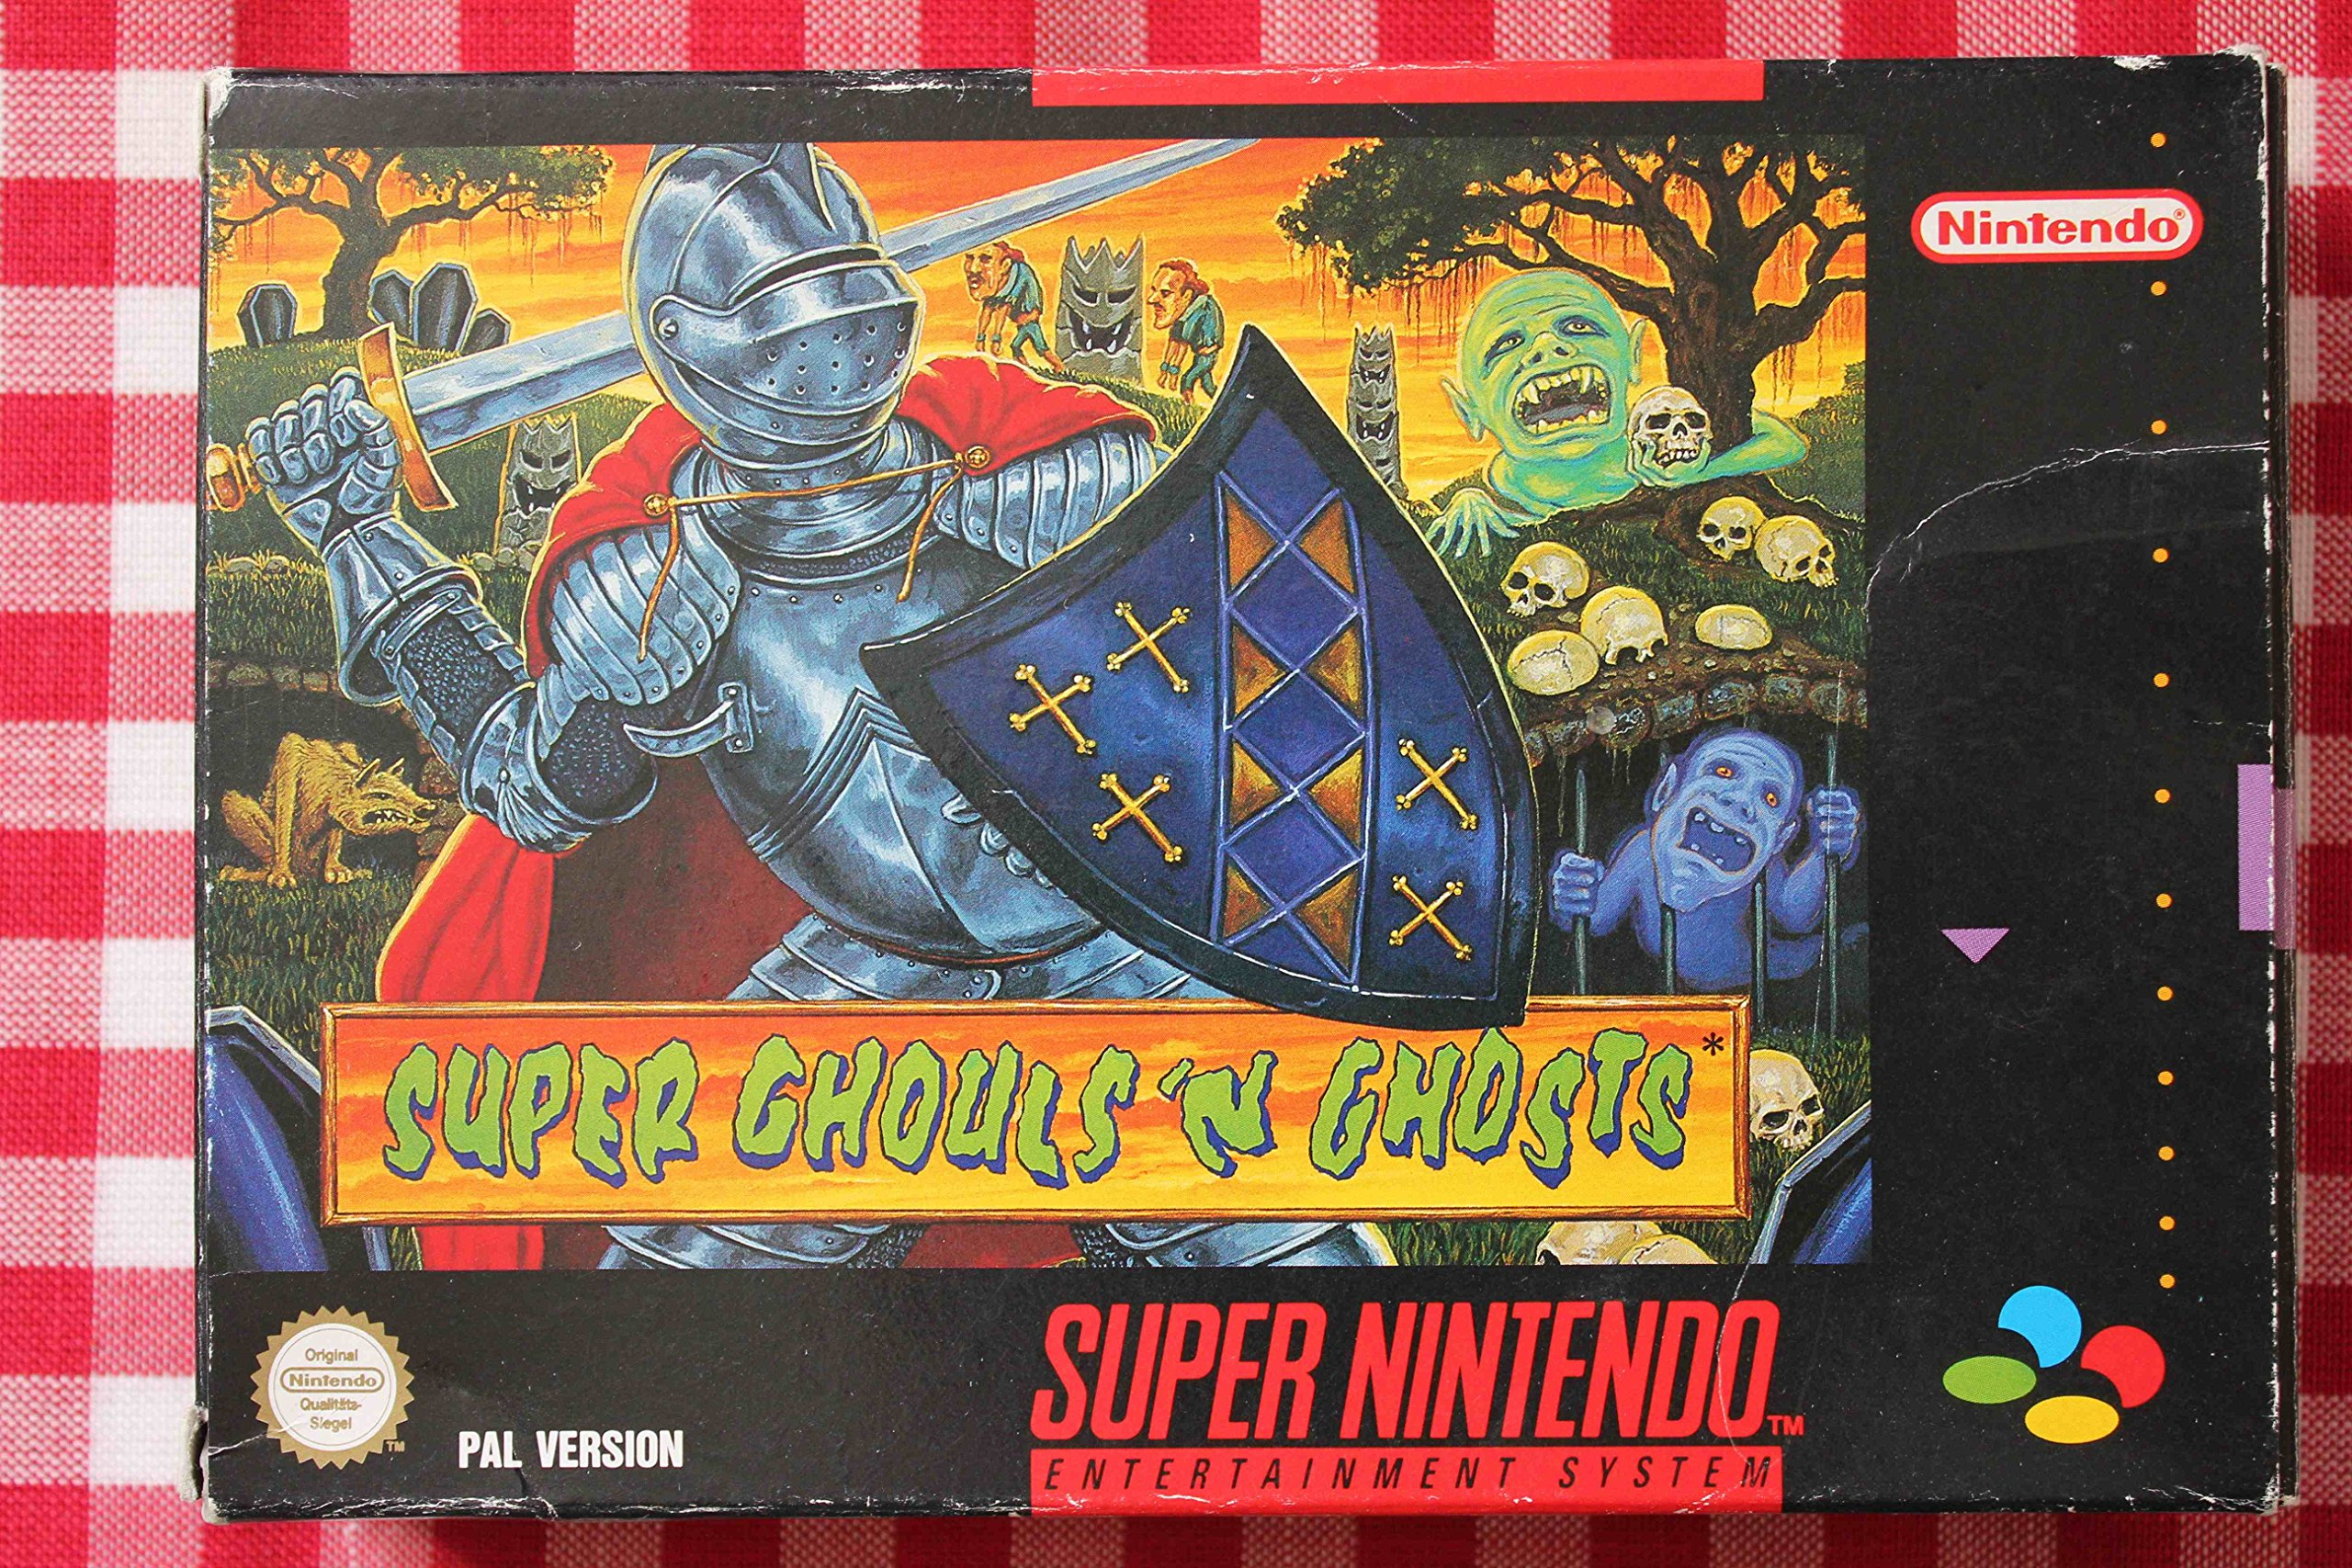 Super Ghouls N Ghosts